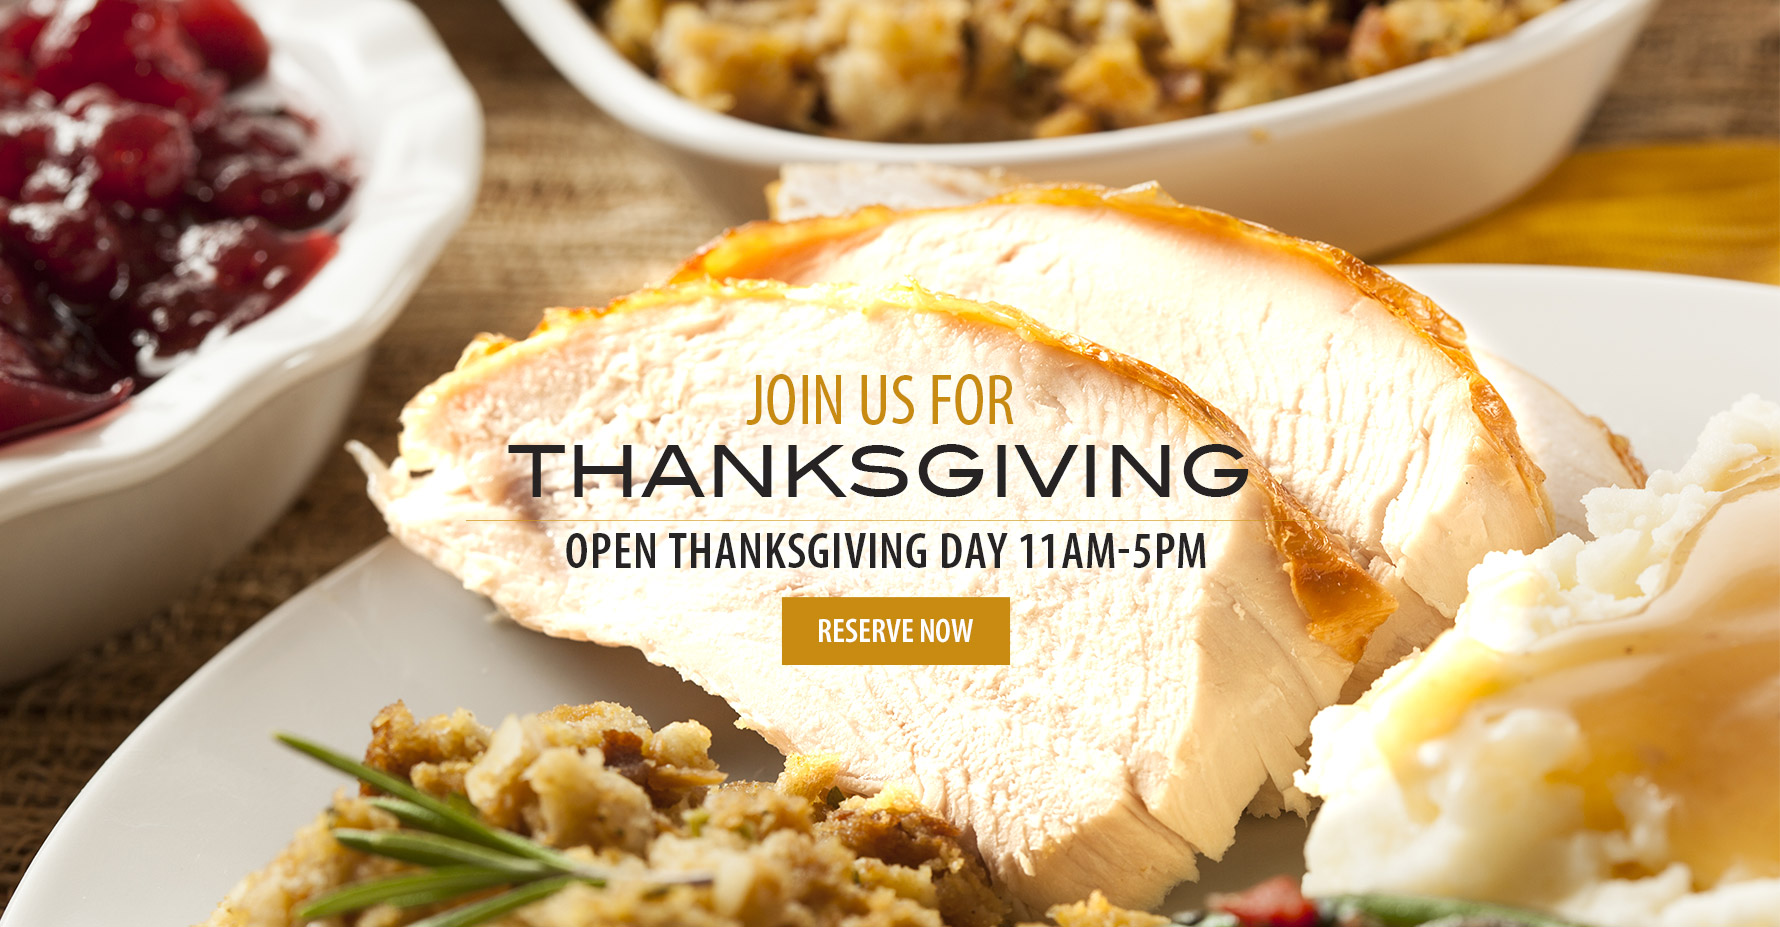 Join us For Thanksgiving. Open Thanksgiving Day 11AM-5PM. Reserve Now